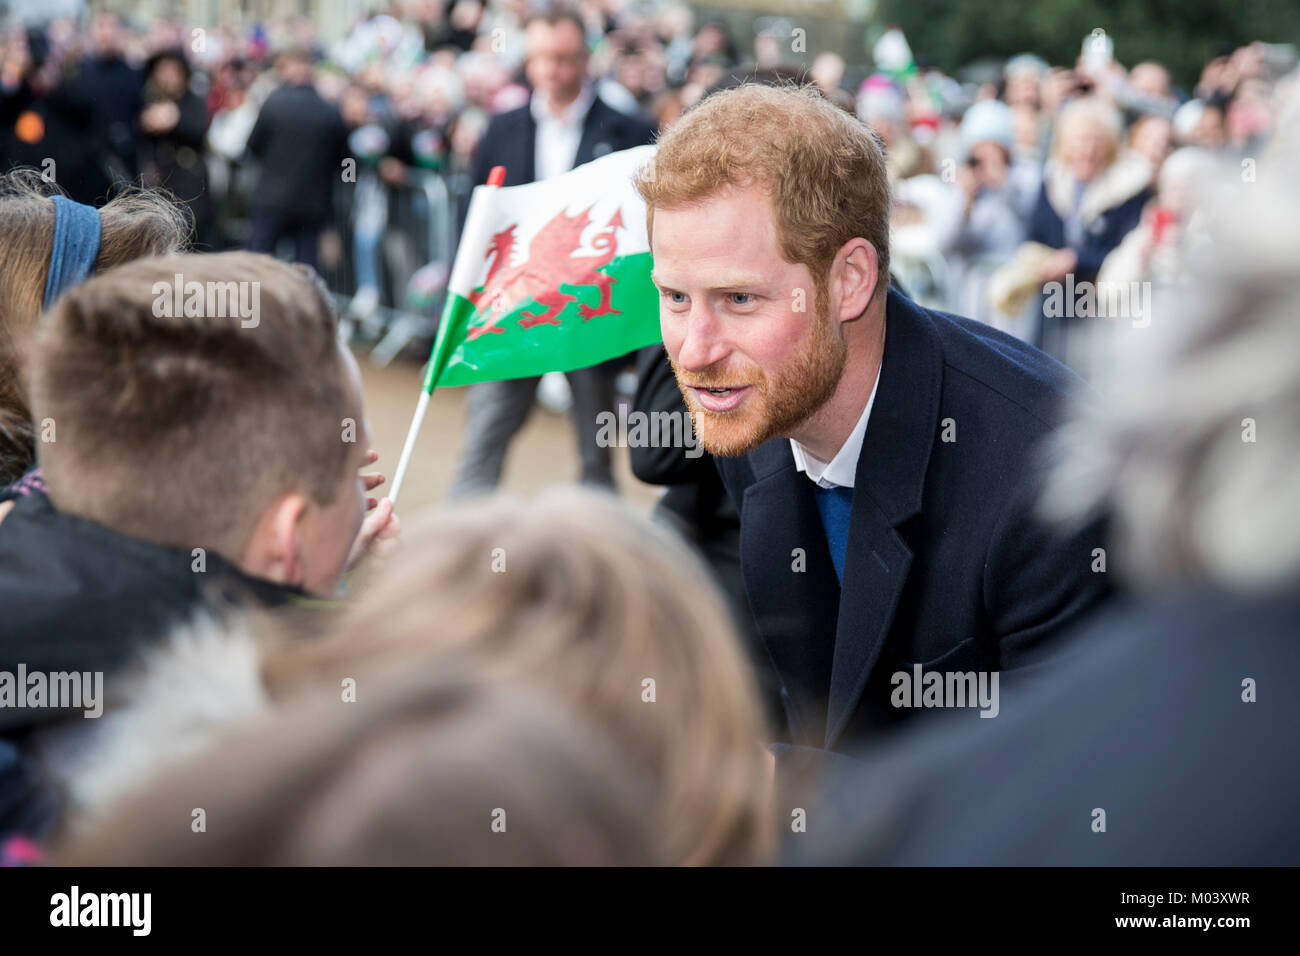 Cardiff, Wales, UK, January 18th 2018. Prince Harry meets schoolchildren as he arrives at Cardiff Castle. Credit: - Stock Image